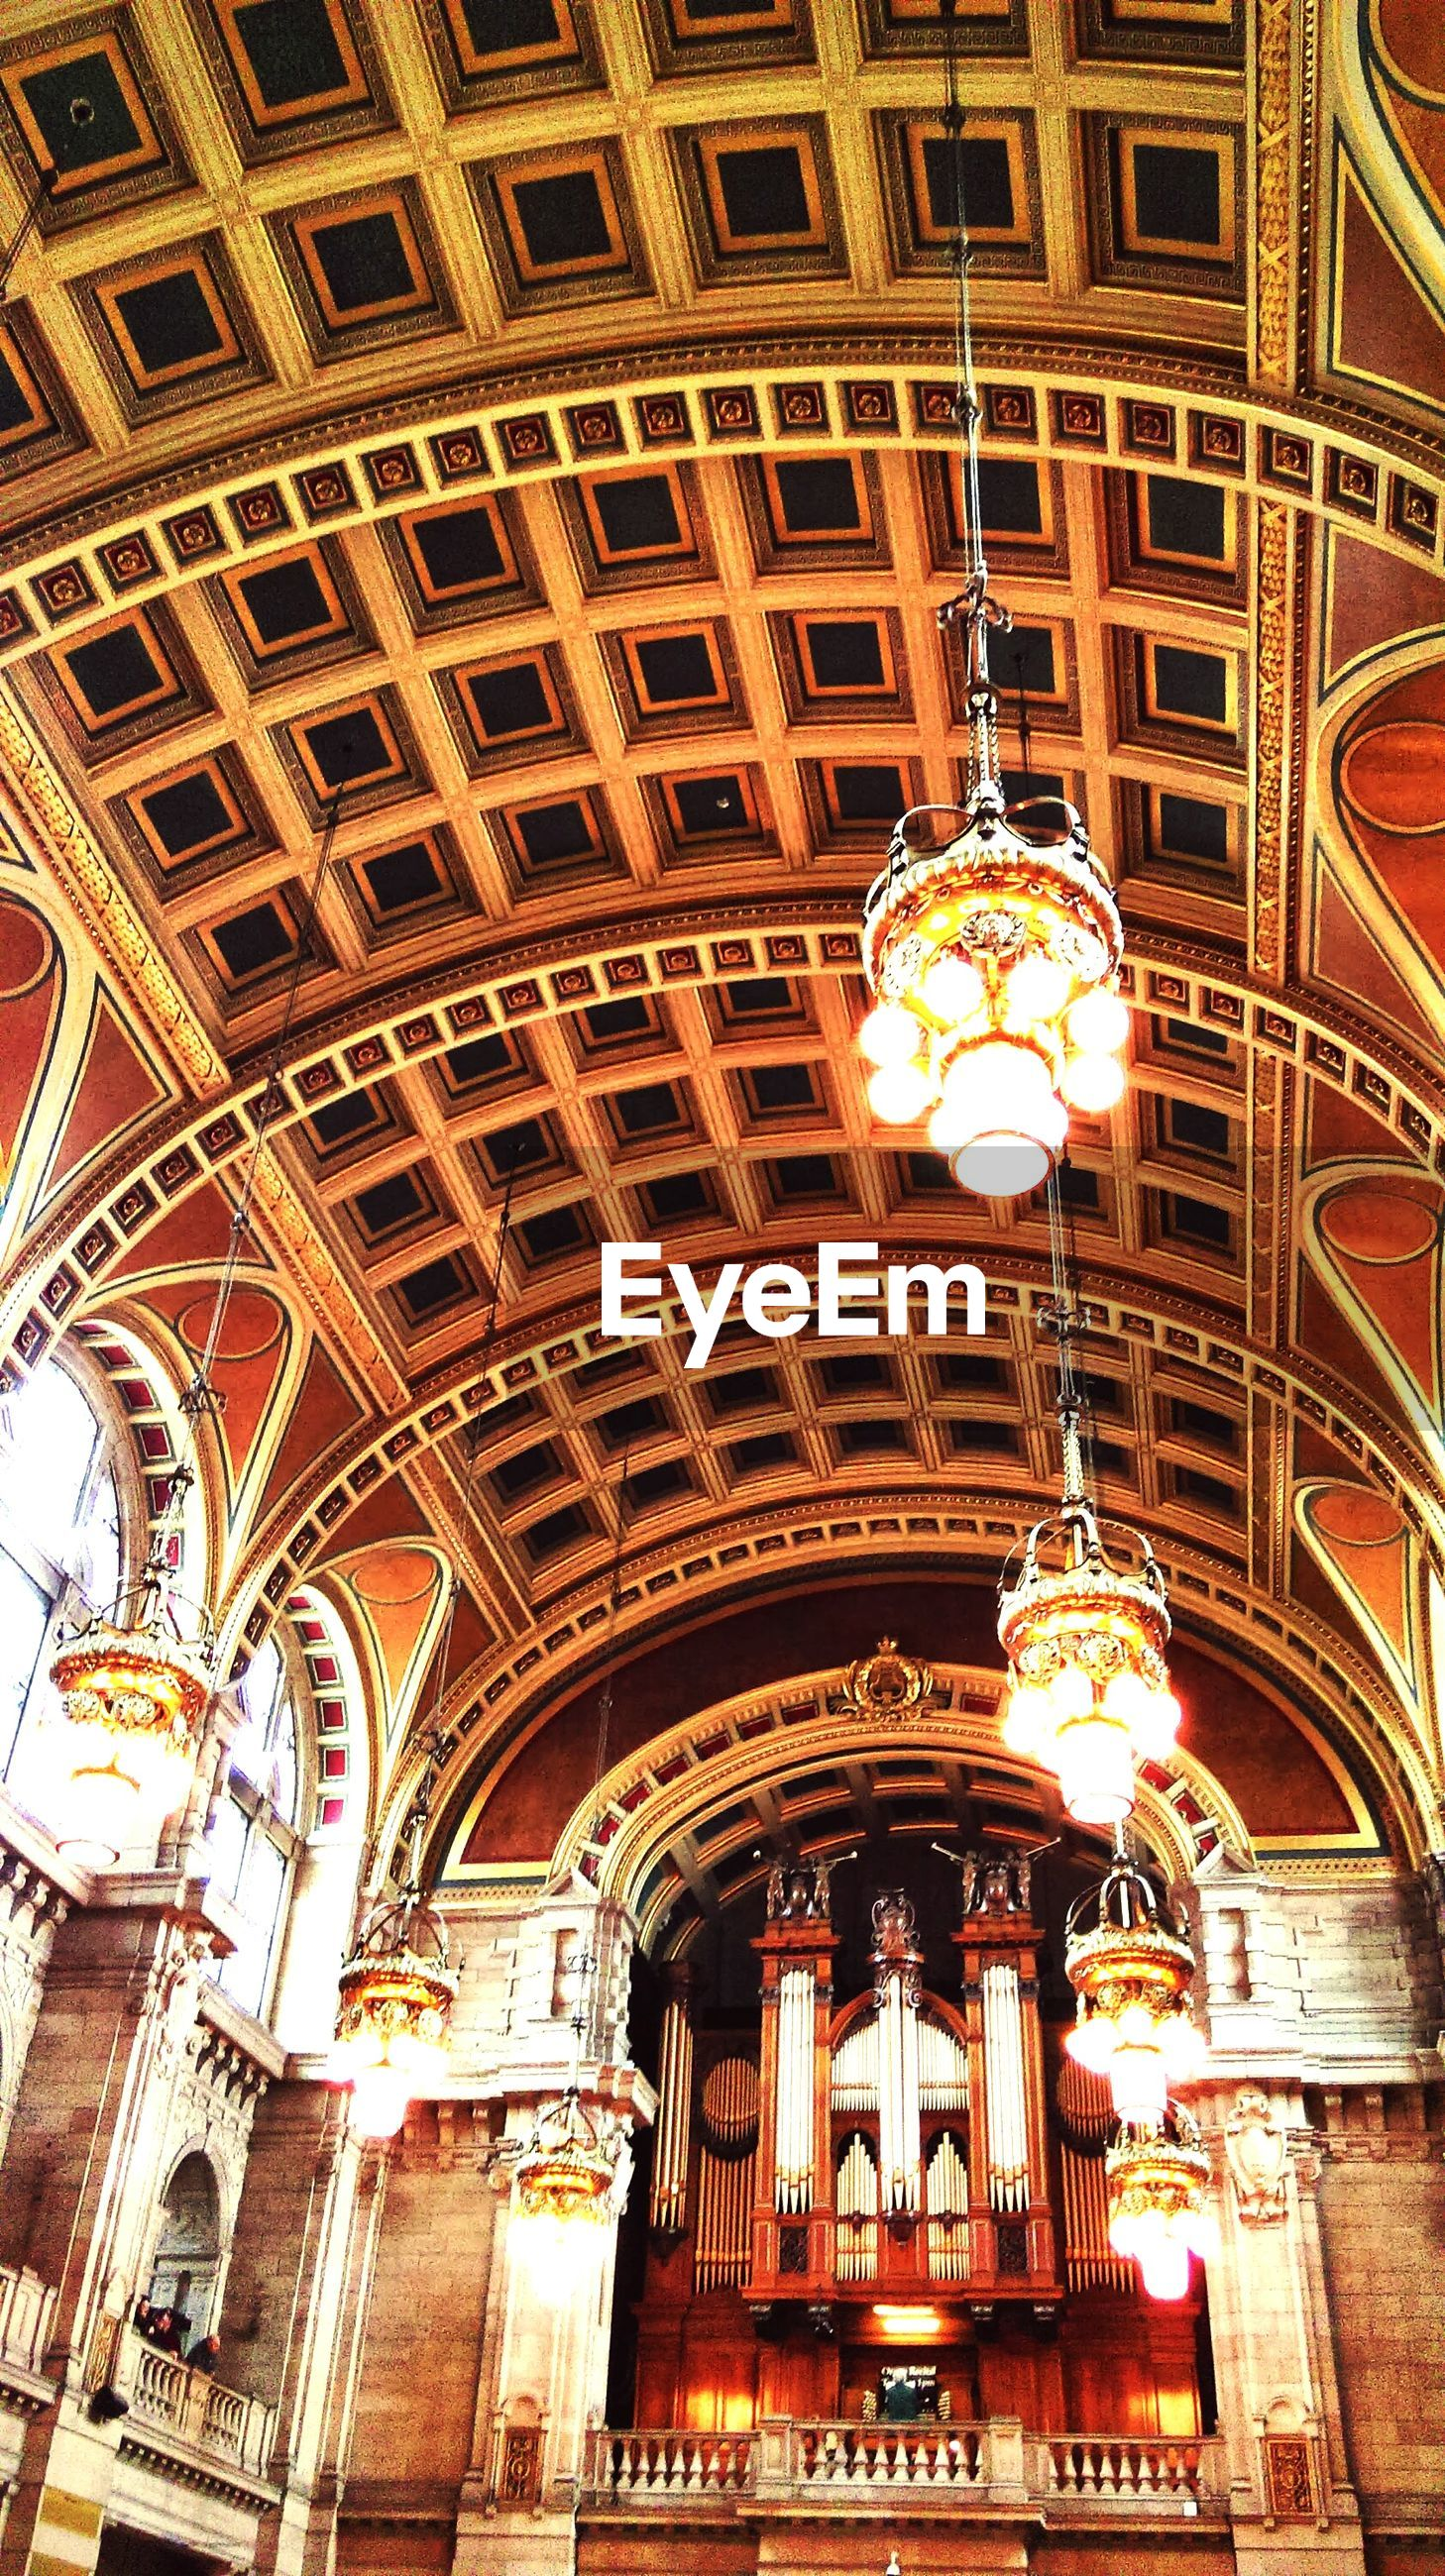 low angle view, architecture, built structure, ceiling, place of worship, illuminated, religion, church, indoors, spirituality, ornate, lighting equipment, chandelier, building exterior, cathedral, architectural feature, design, famous place